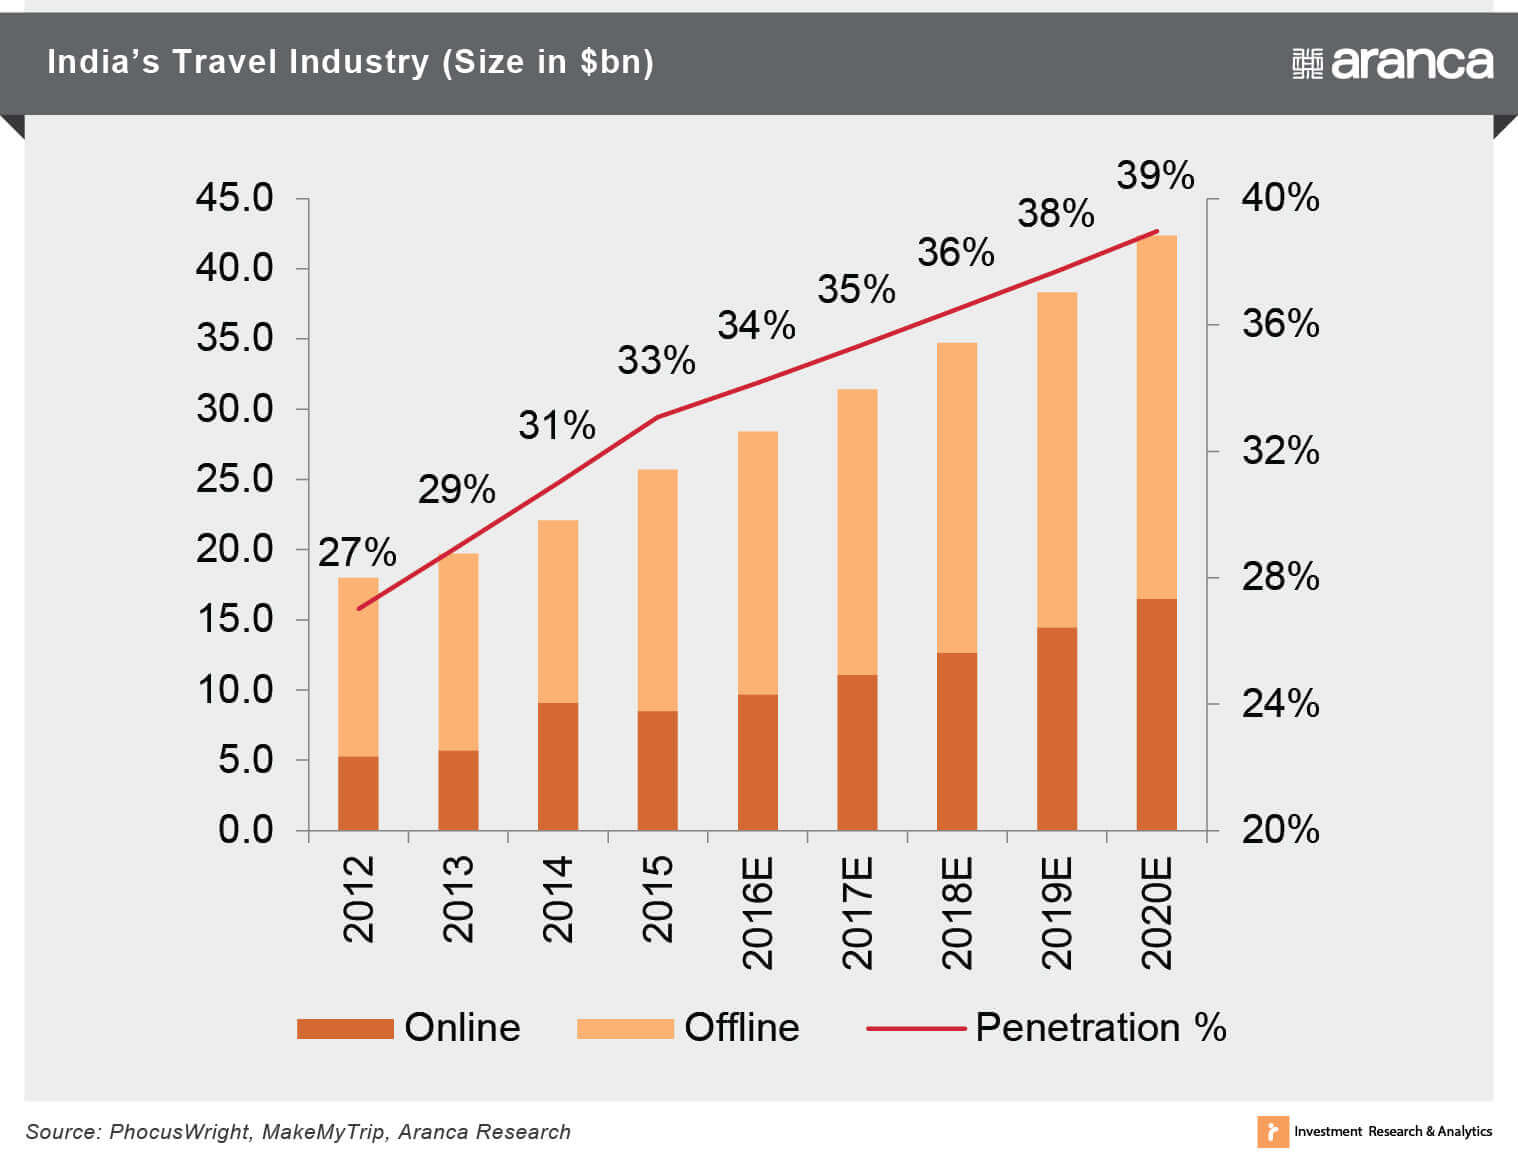 India's Travel Industry (Size in $bn)